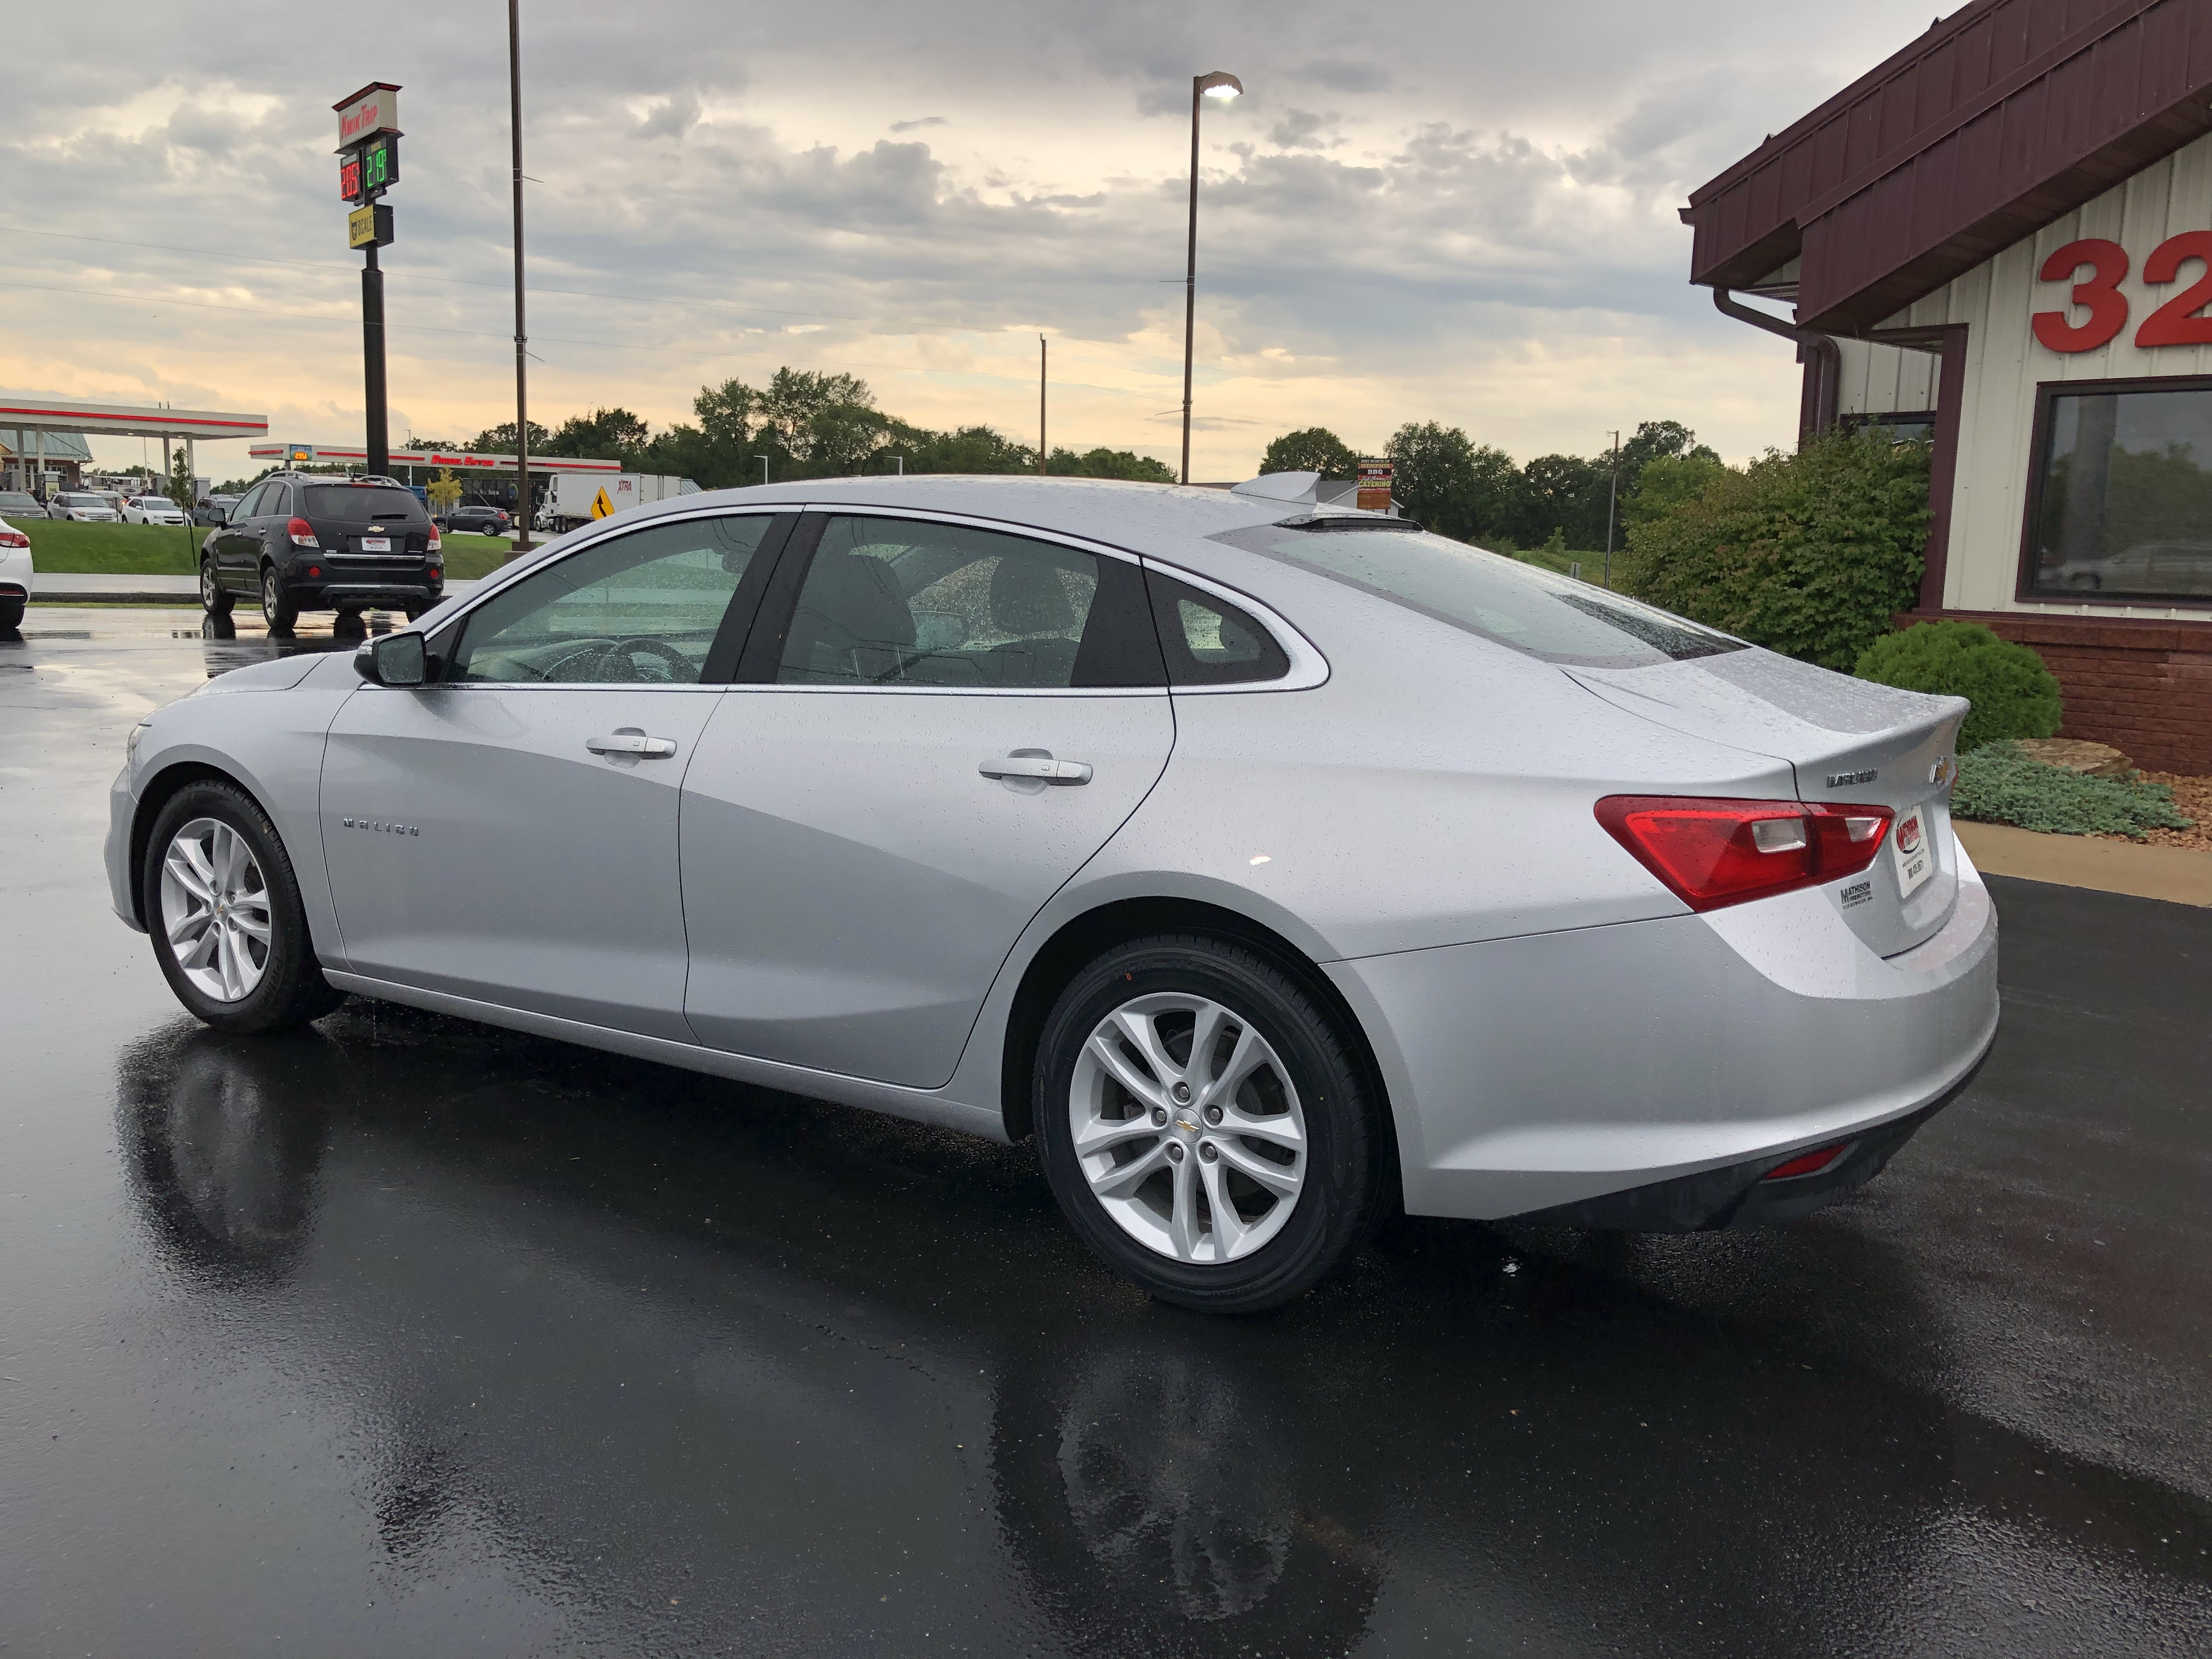 used vehicle - Sedan Chevrolet Malibu 2018